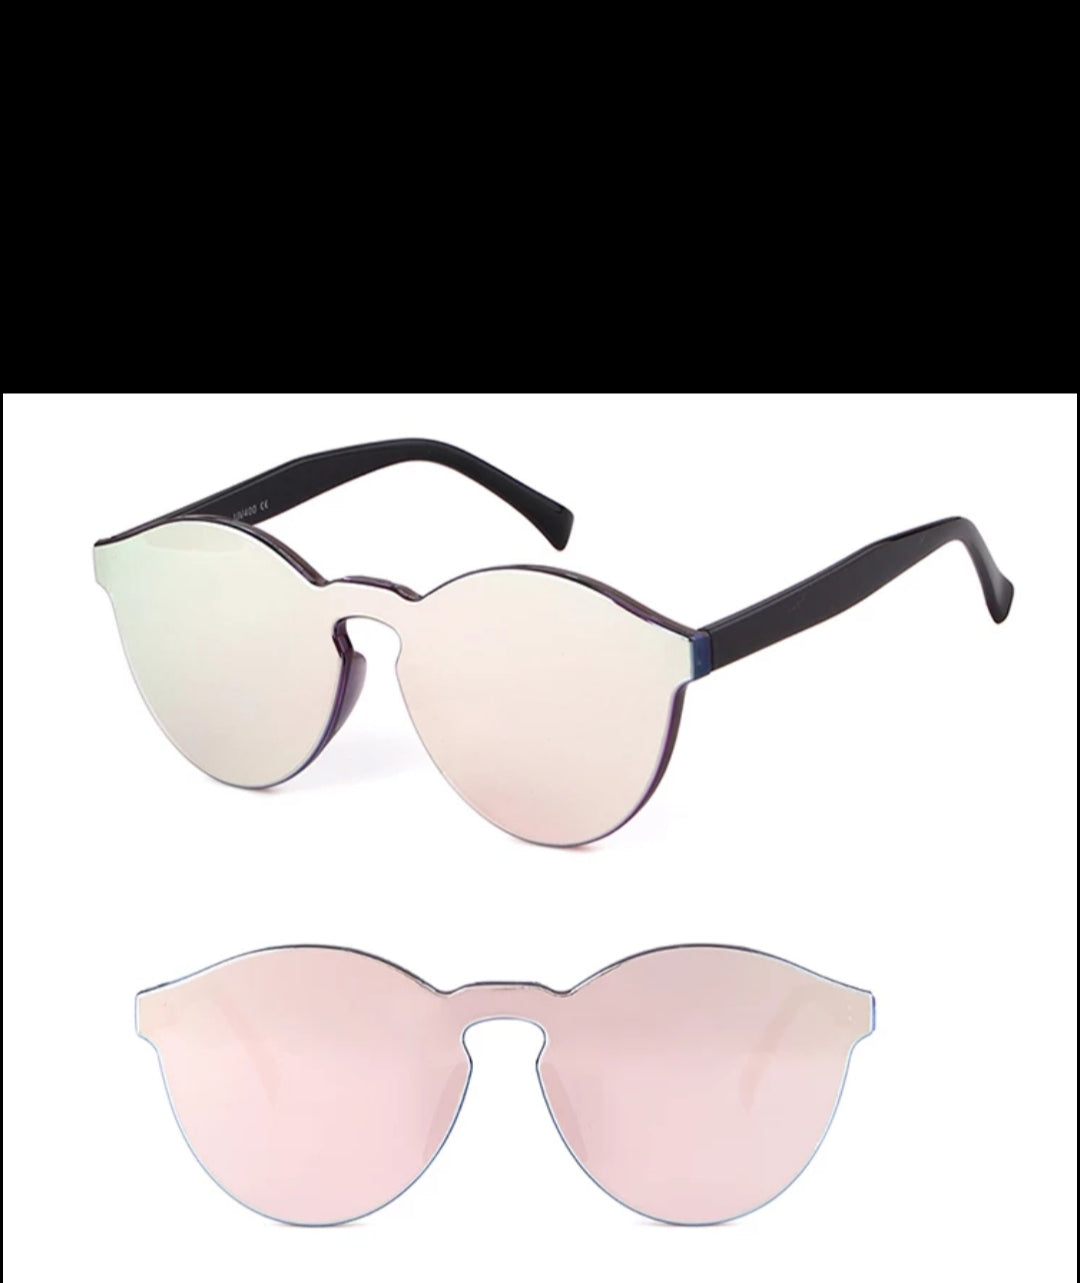 Fashion Sunglasses- Pink/Silver Solid